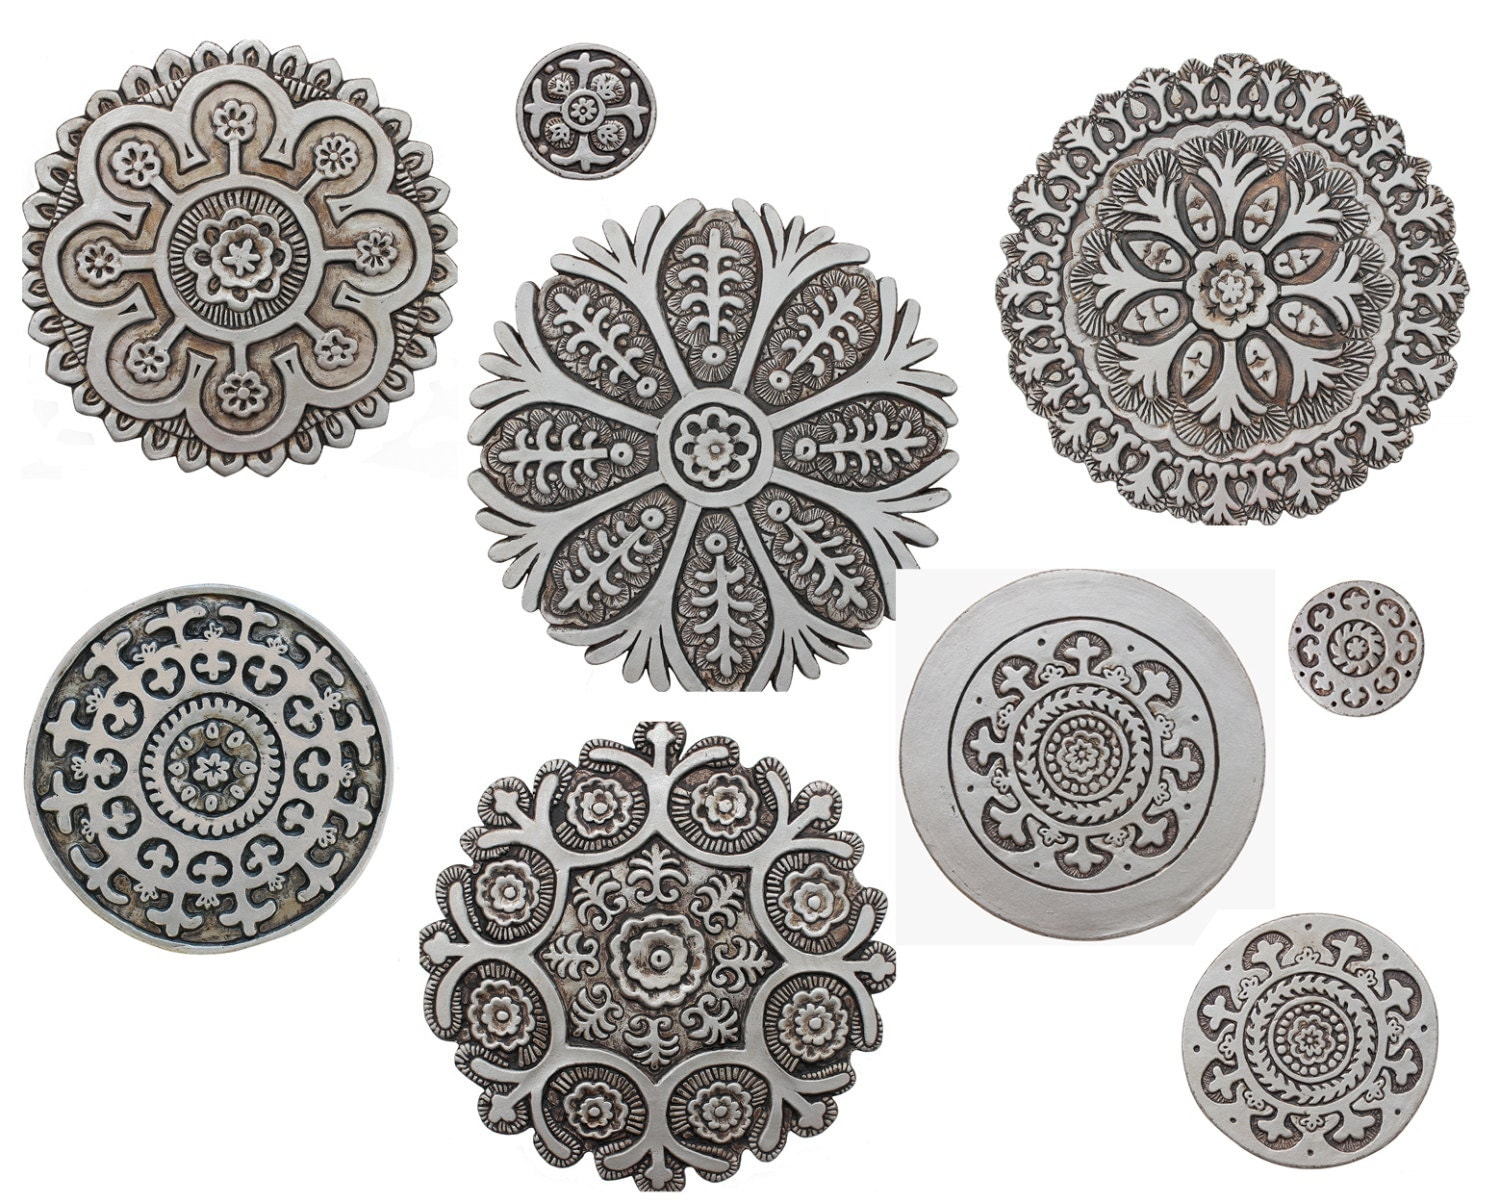 9 circle wall art with suzani designs painted in aged silver